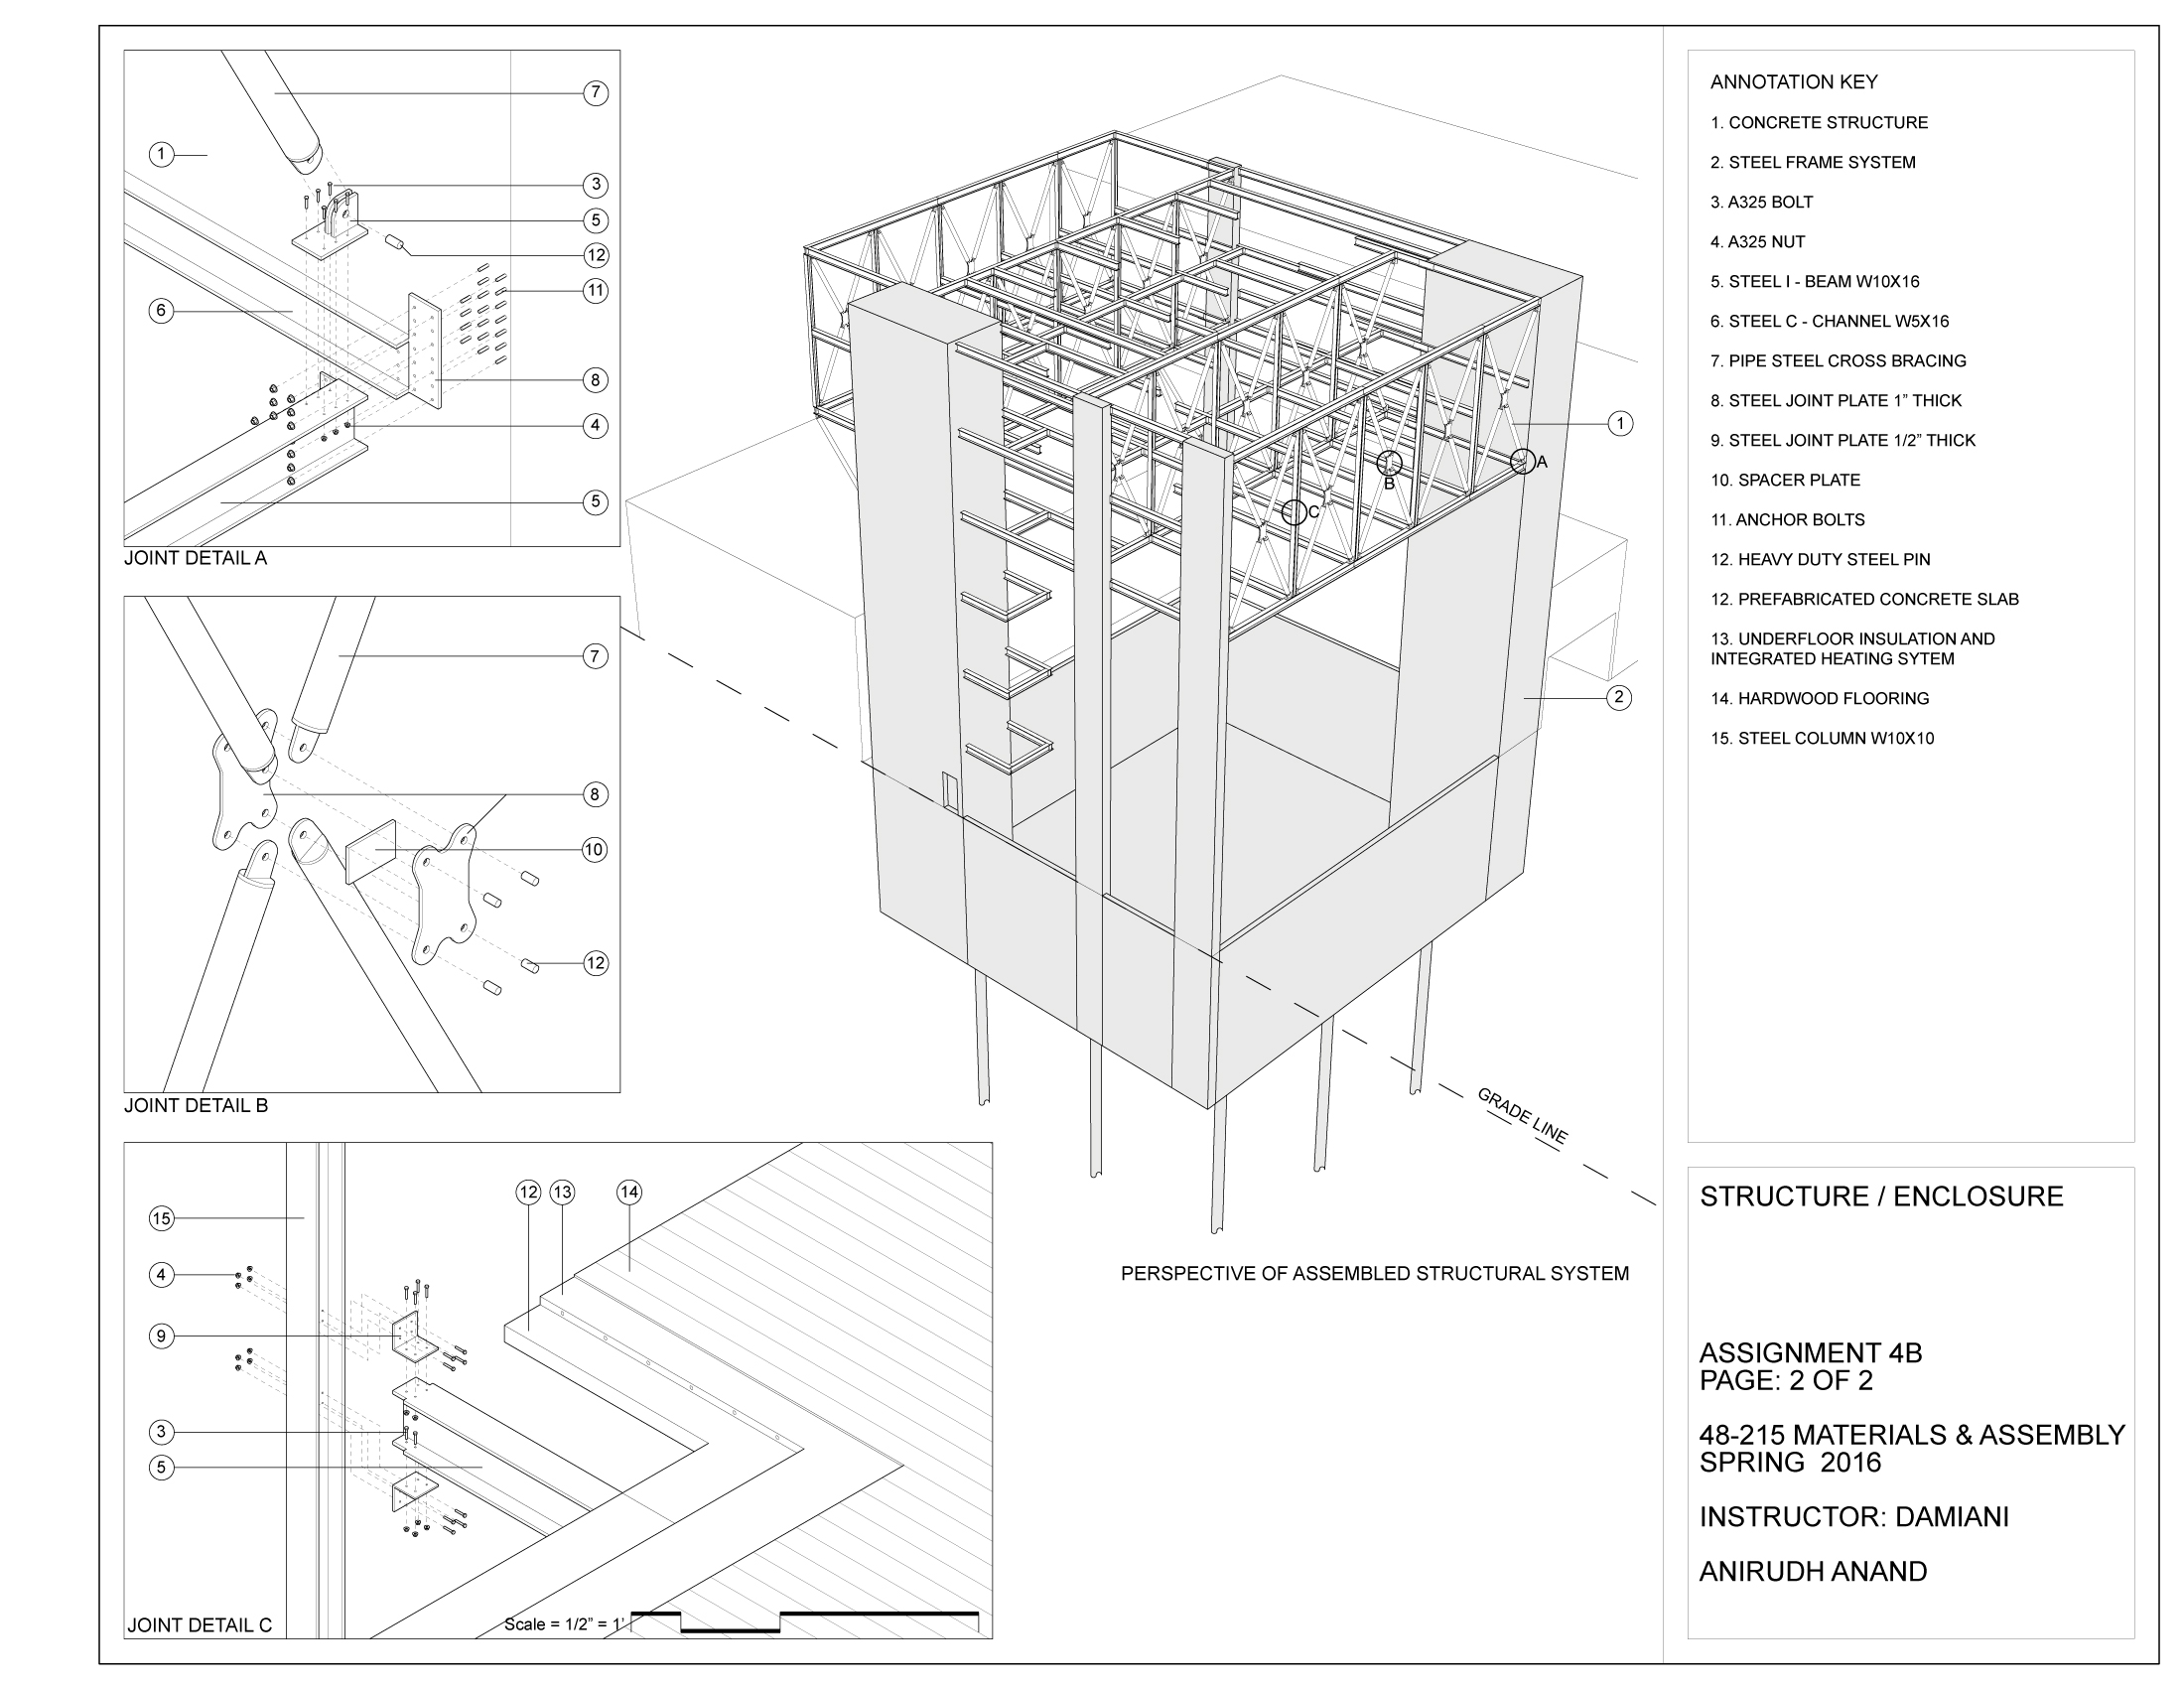 Materials and Assembly Structure / Enclosure Specifications 2 (clisk to enlarge)